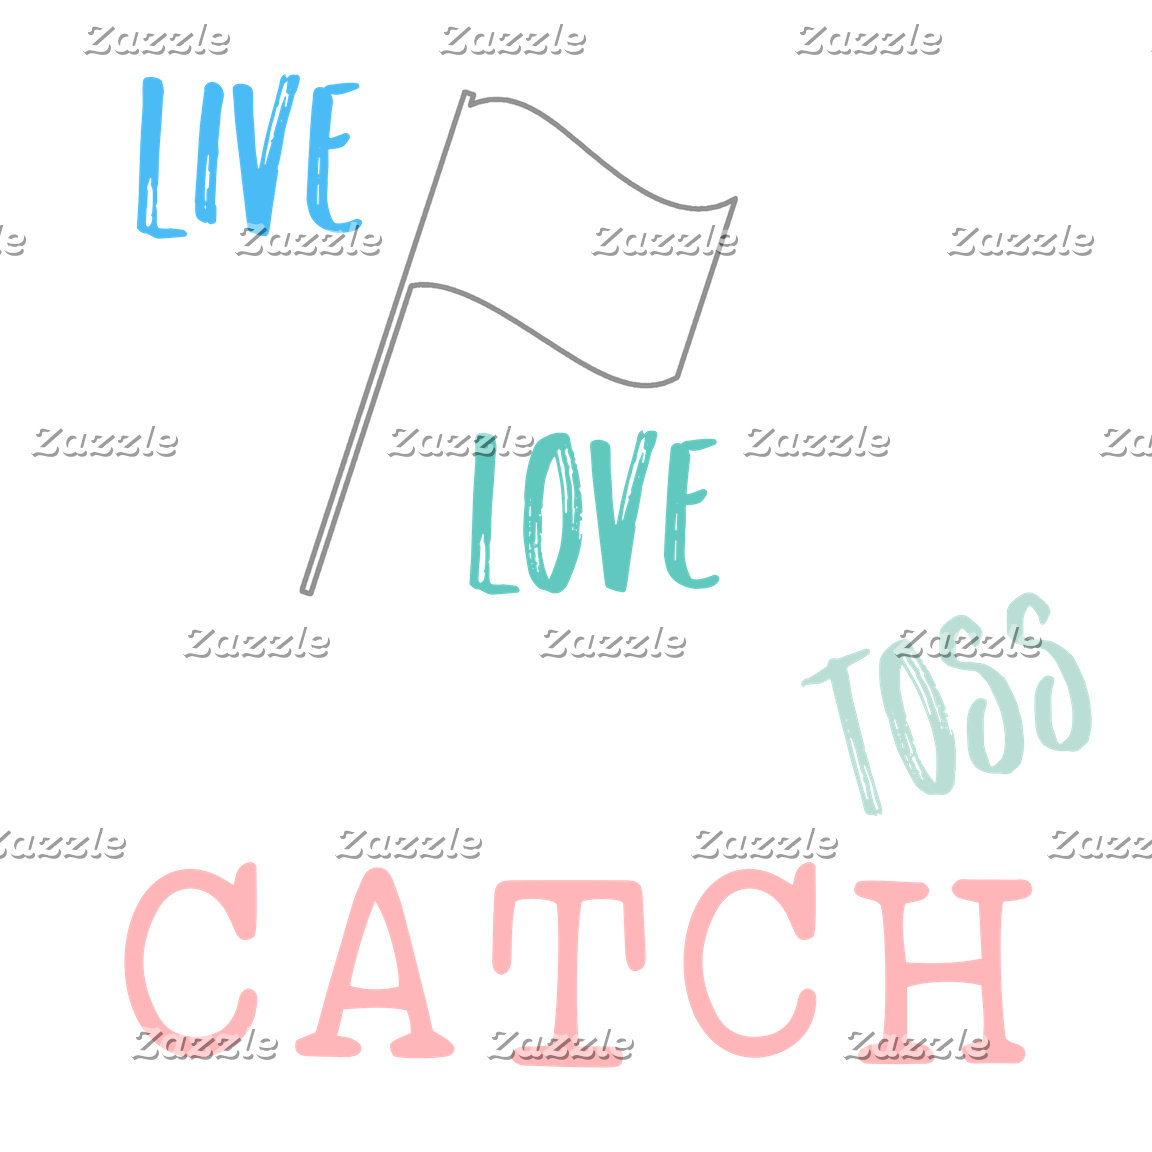 Live, Love, Toss, CATCH